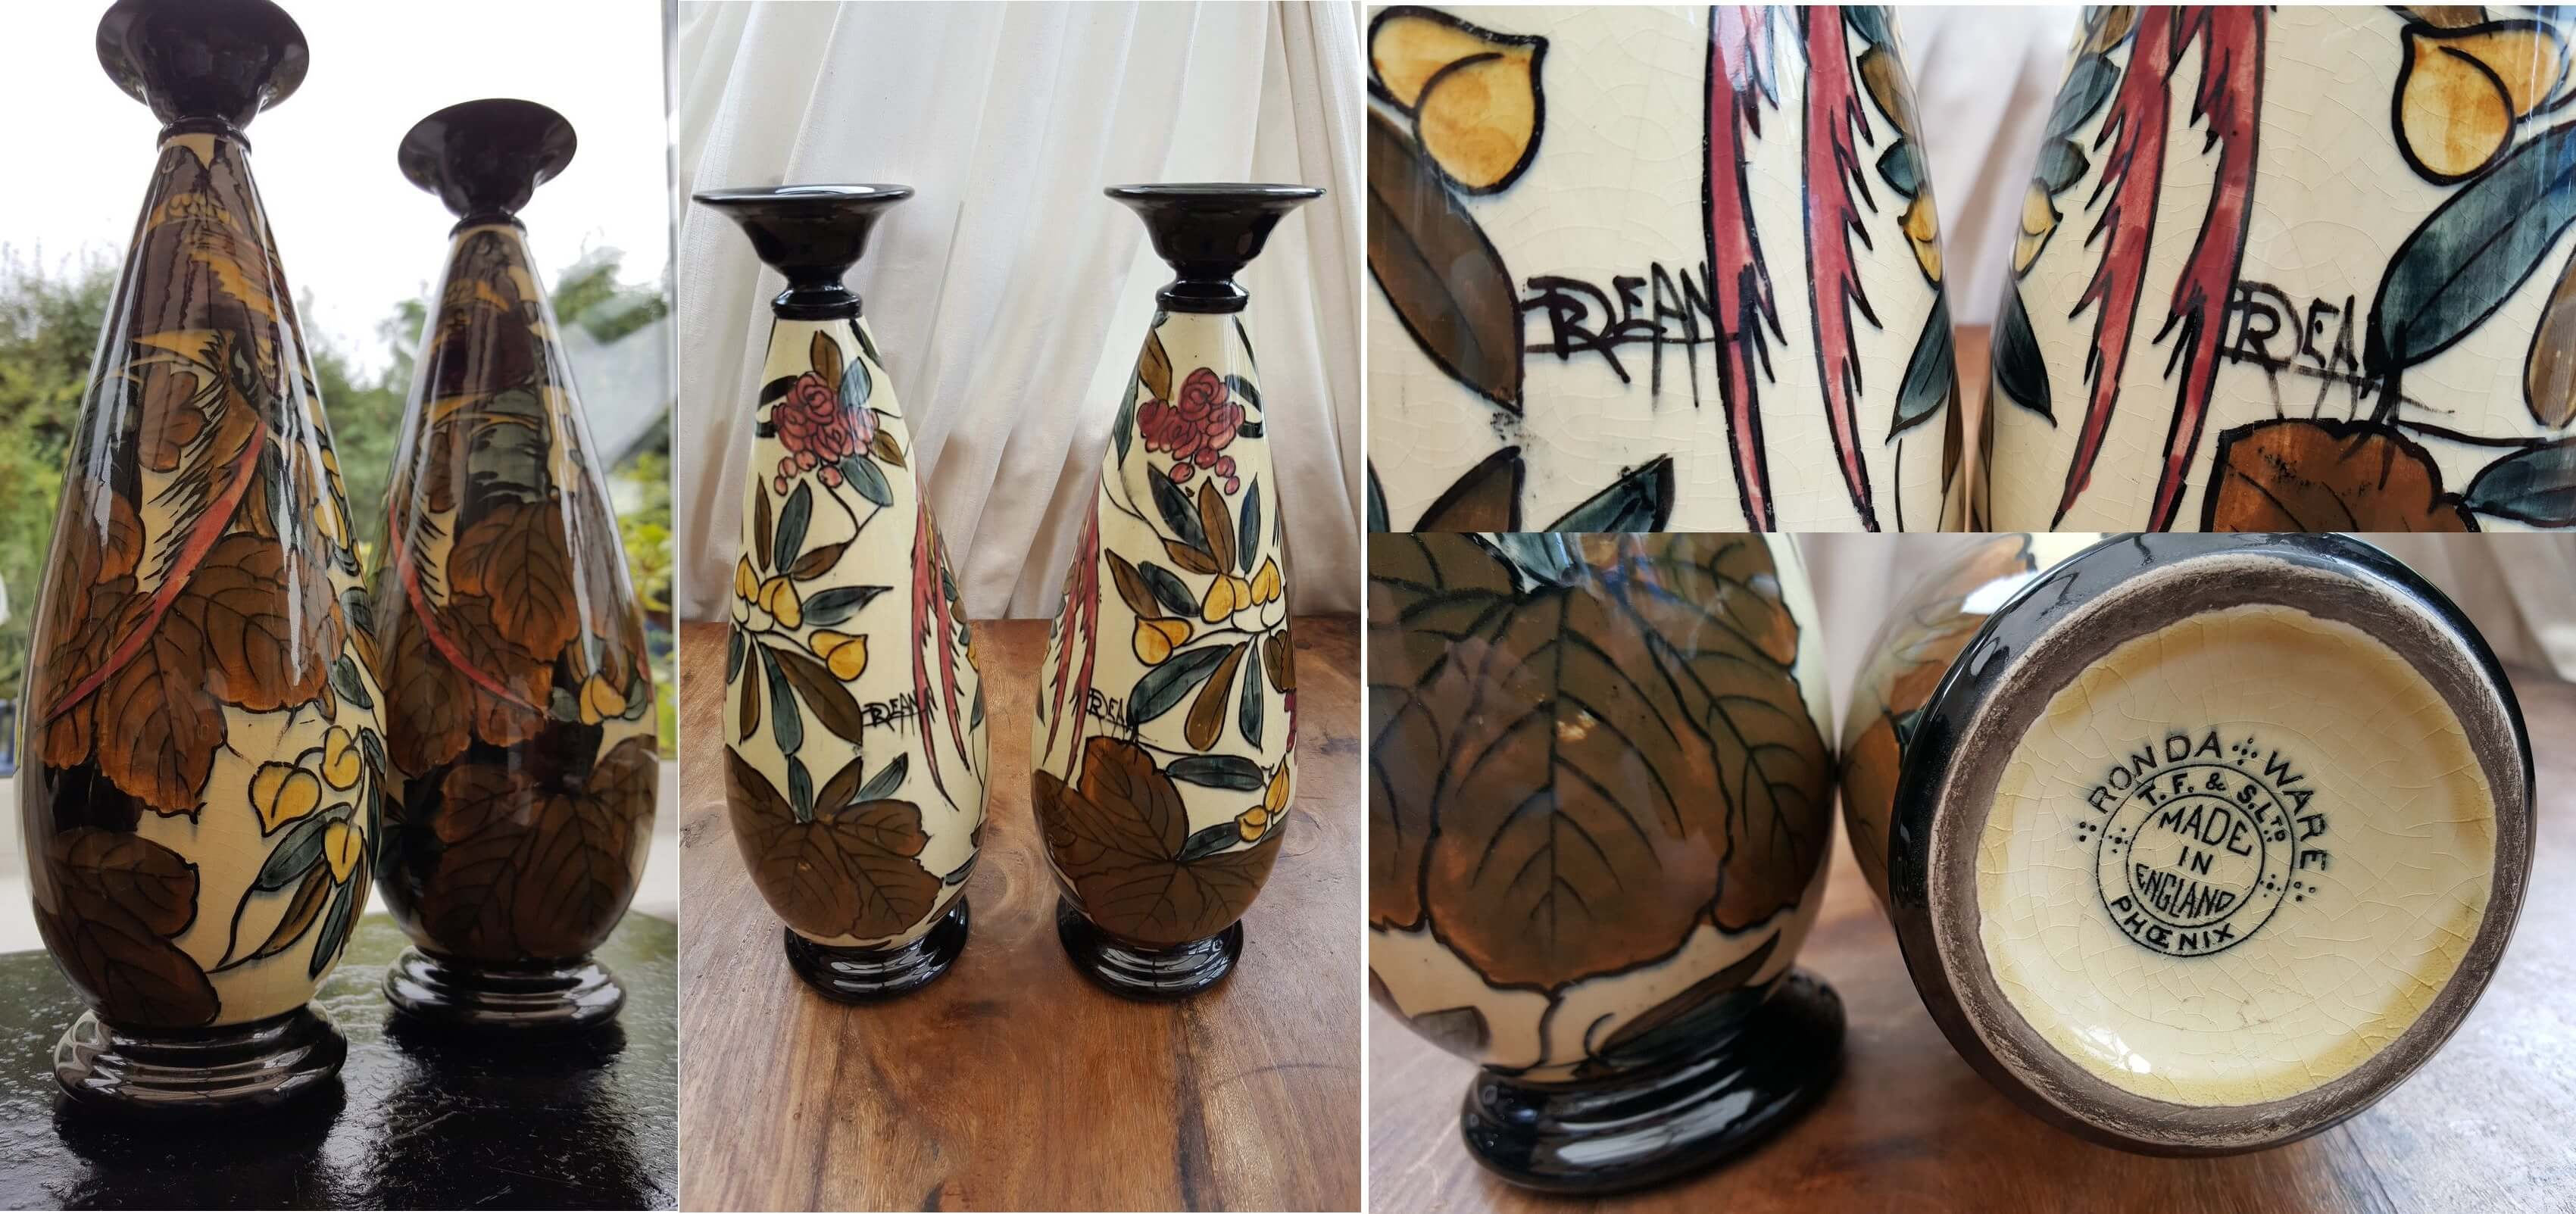 Pair of Roger Dean Handpainted Vases 32cms Tall